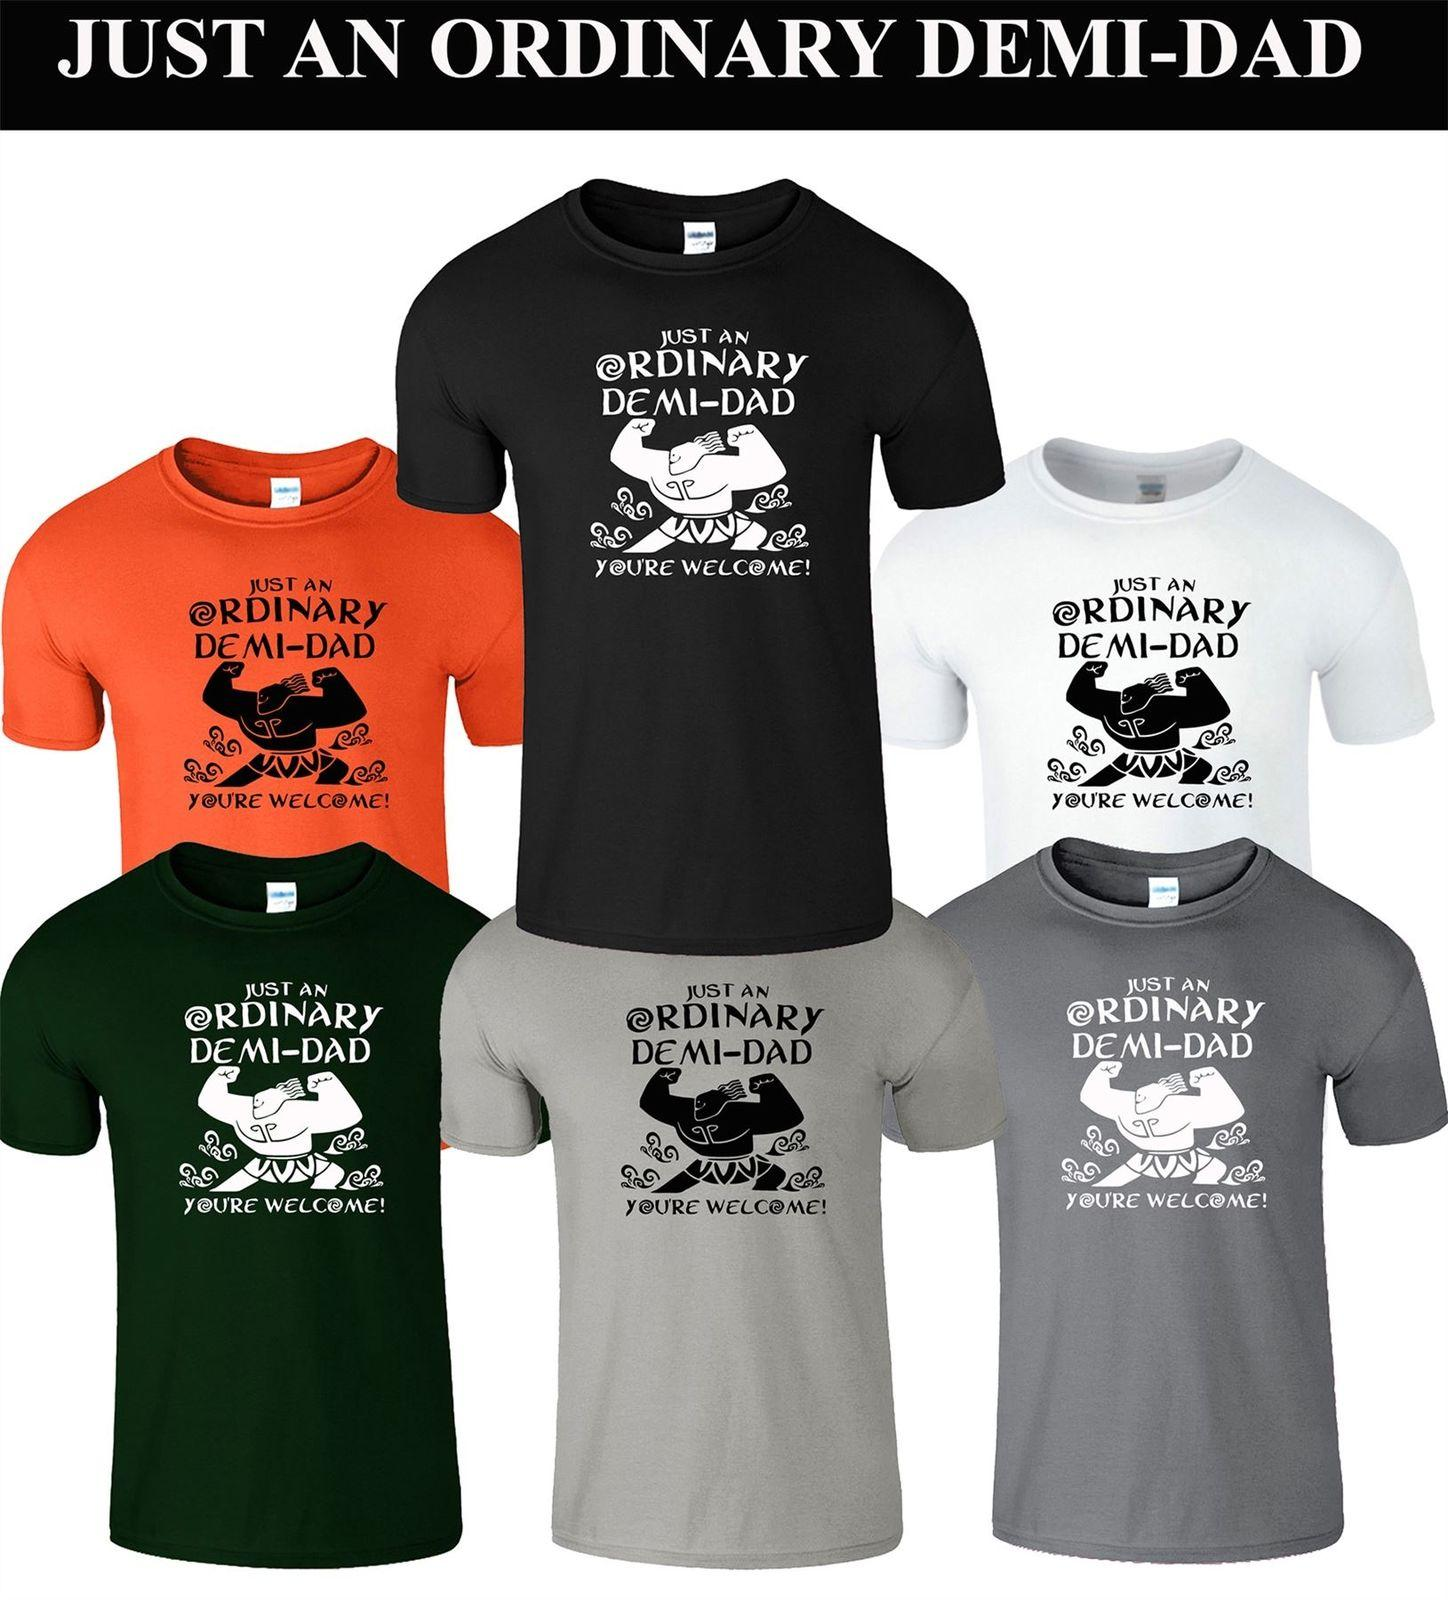 6a5258bb Fathers Day T-Shirt Just An Ordinary Demi-Dad You're Welcome Mens Orange  TShirt Cool Casual pride t shirt men Unisex